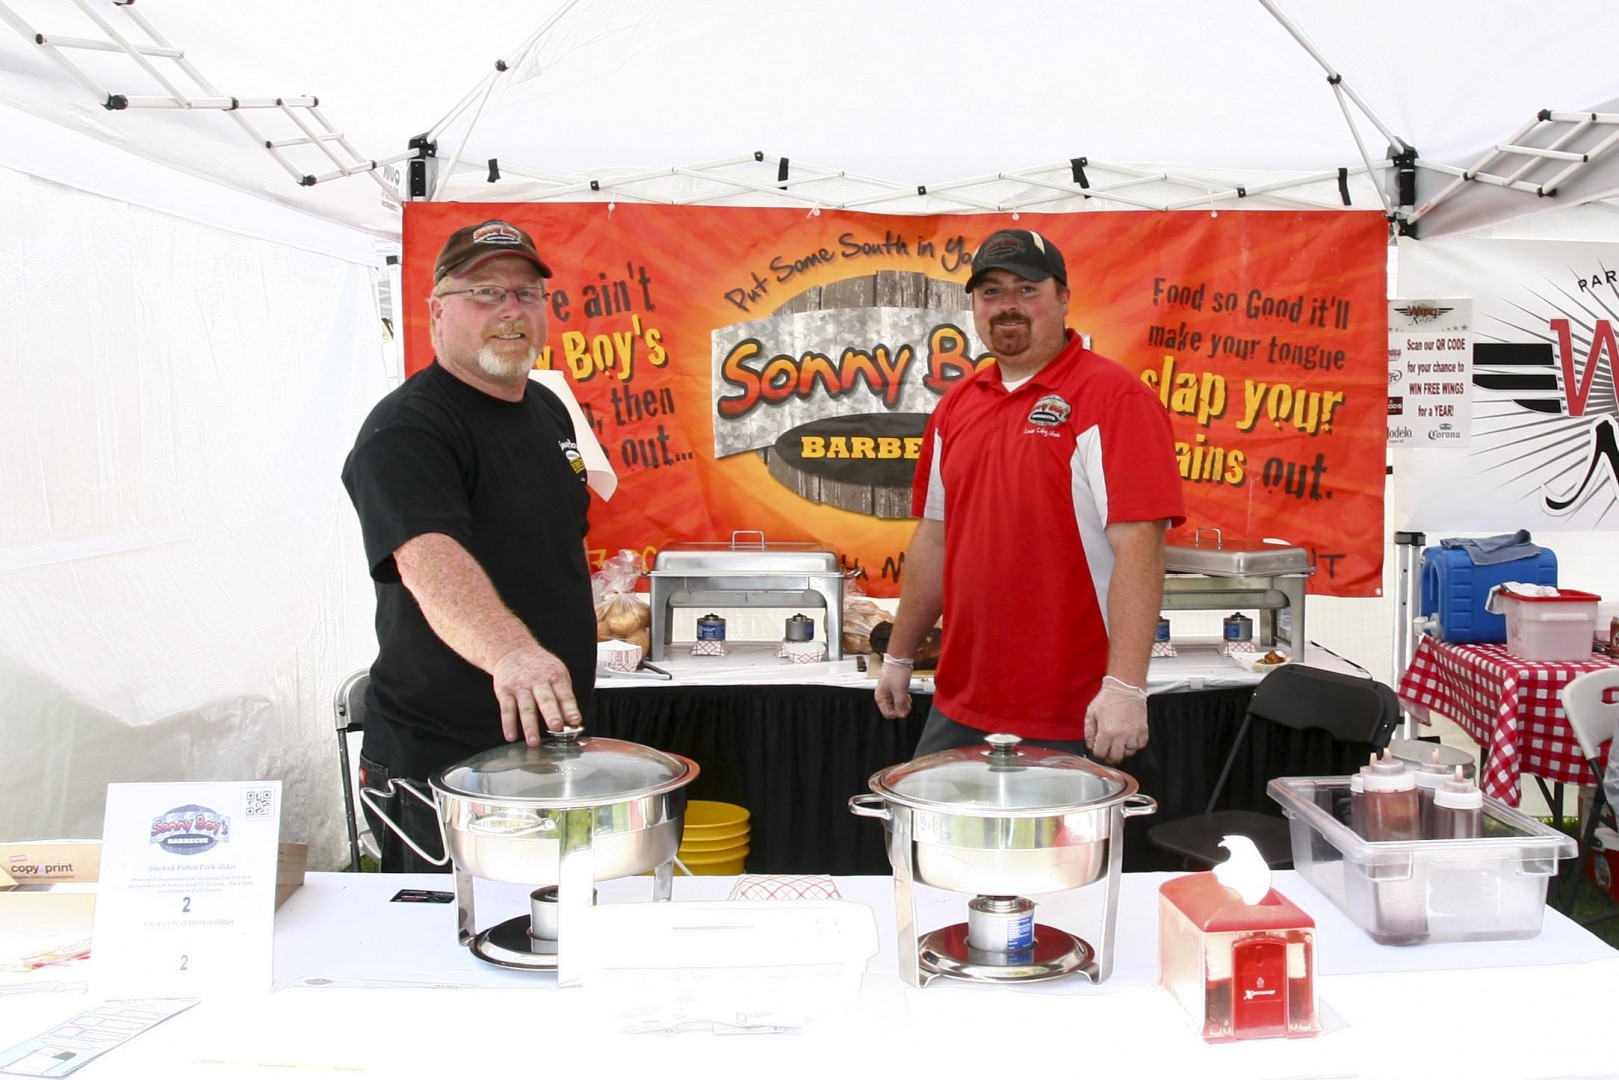 Lon Allen and Scott Allen vending for Sonny Boy's Barbecue, Southern Utah Culinary Festival, Vernon Worthen Park, St. George, Utah, April 26, 2013 | Photo by A.J. Mellor, St. George News